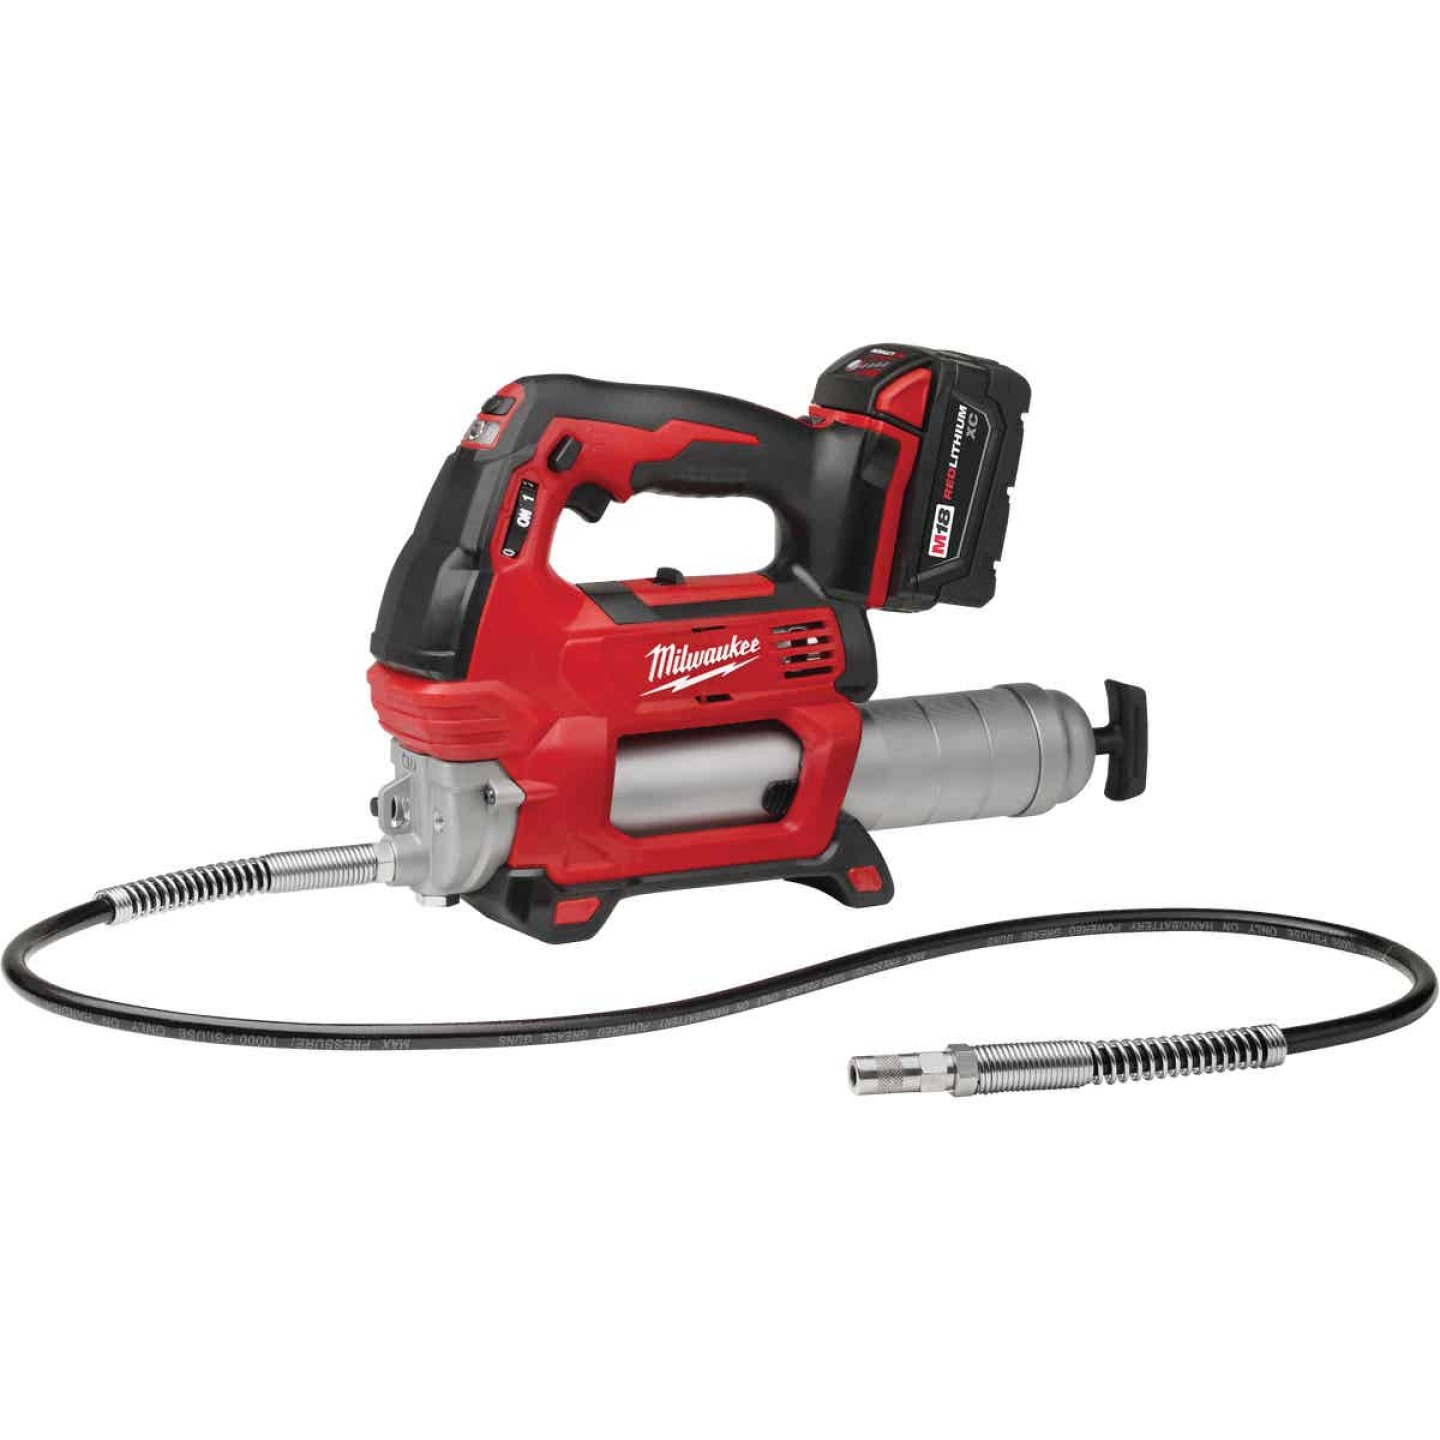 Milwaukee M18 18 Volt Lithium-Ion 2-Speed Cordless Grease Gun (Bare Tool) Image 3